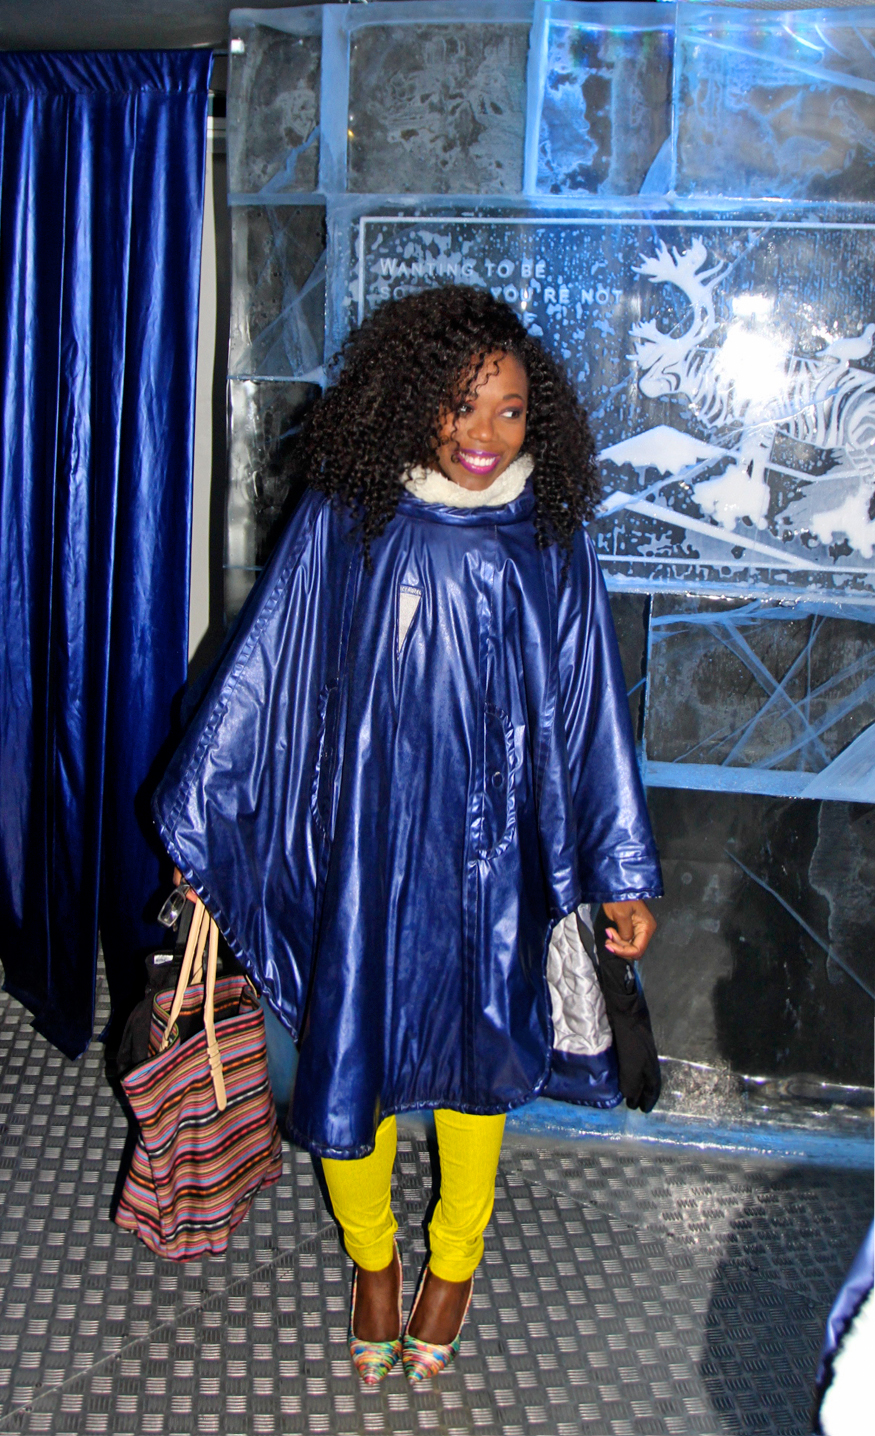 Clad in my Ice coat at the Absolut Ice Bar in Stockholm, Sweden were everything is made of ice!